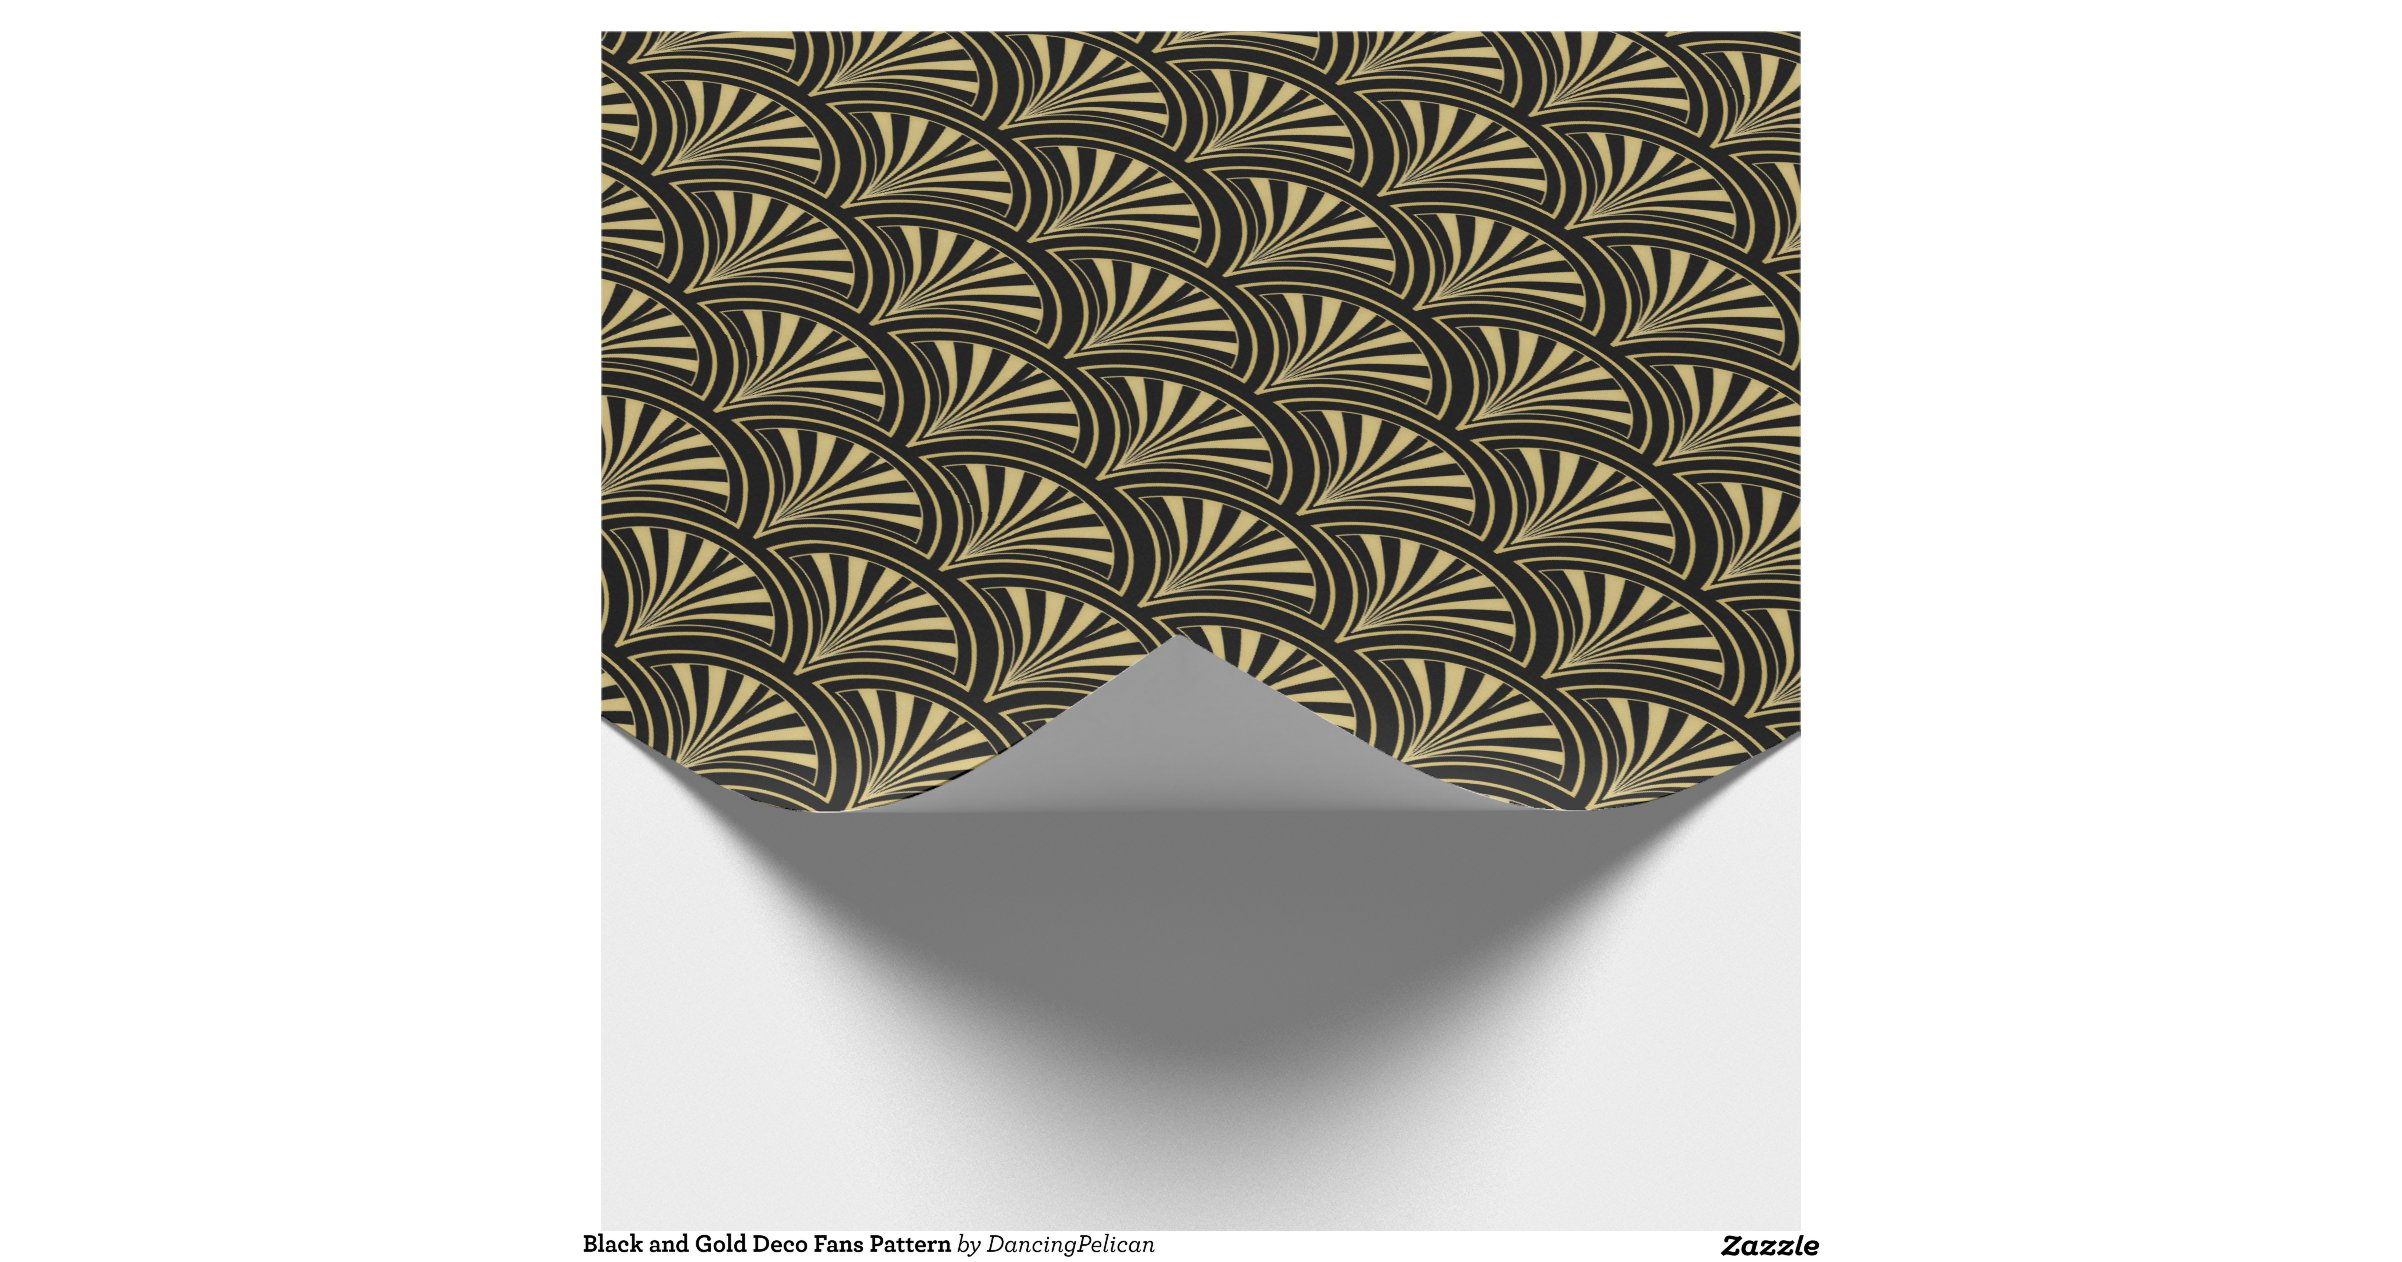 black and gold deco fans pattern wrapping paper r5d82f30dcee54a7c93a79ed5cf07f7dd zkehq 8byvr. Black Bedroom Furniture Sets. Home Design Ideas